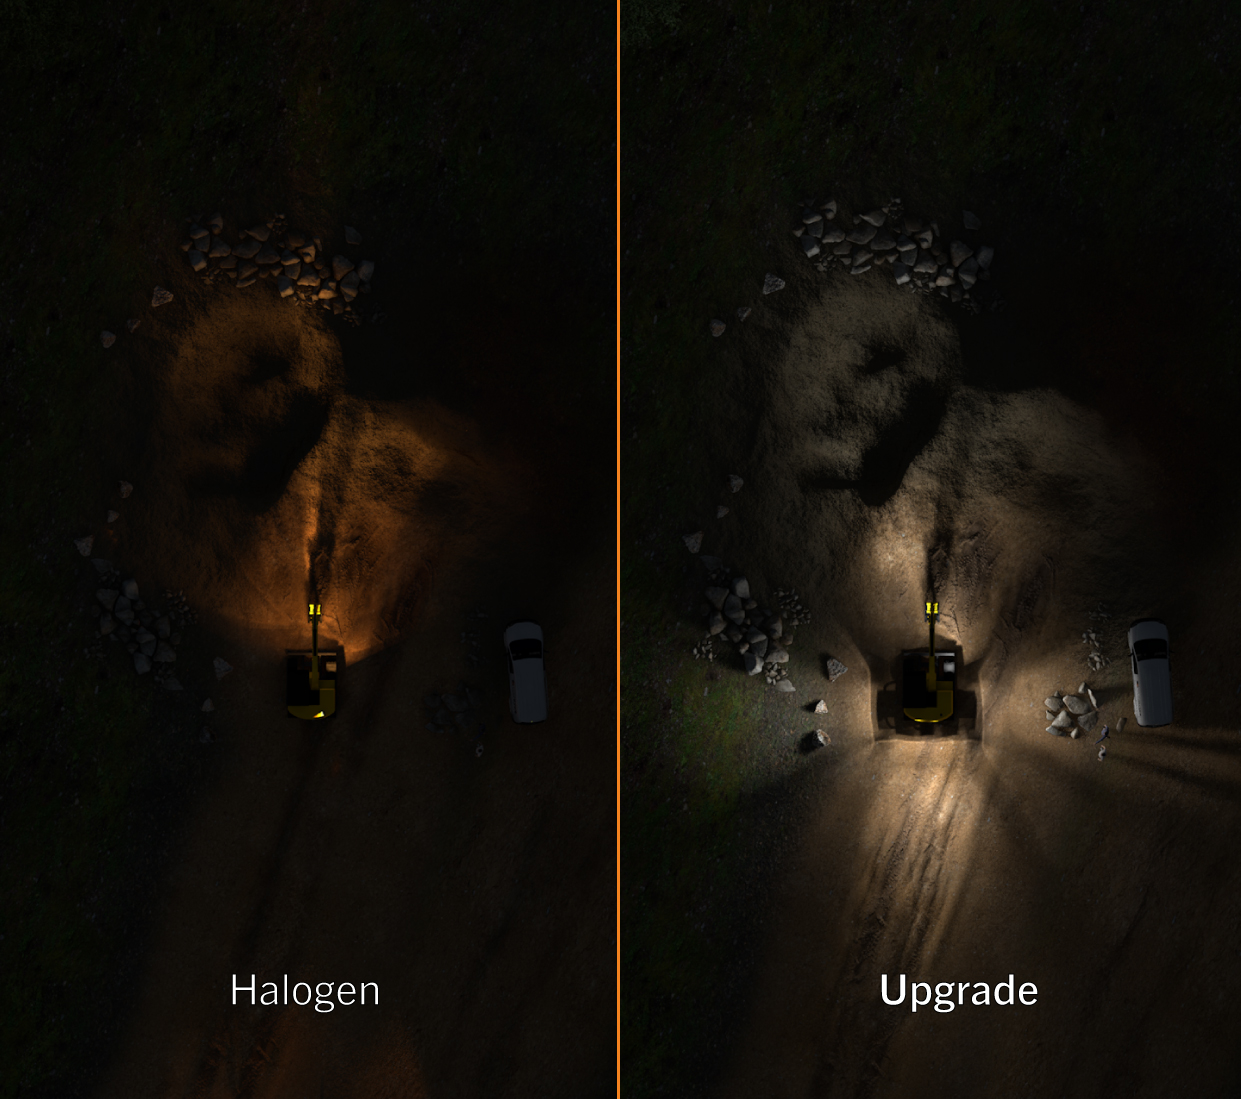 Simulated excavator light comparison of halogen vs Nordic Lights LED upgrade on small yellow excavator